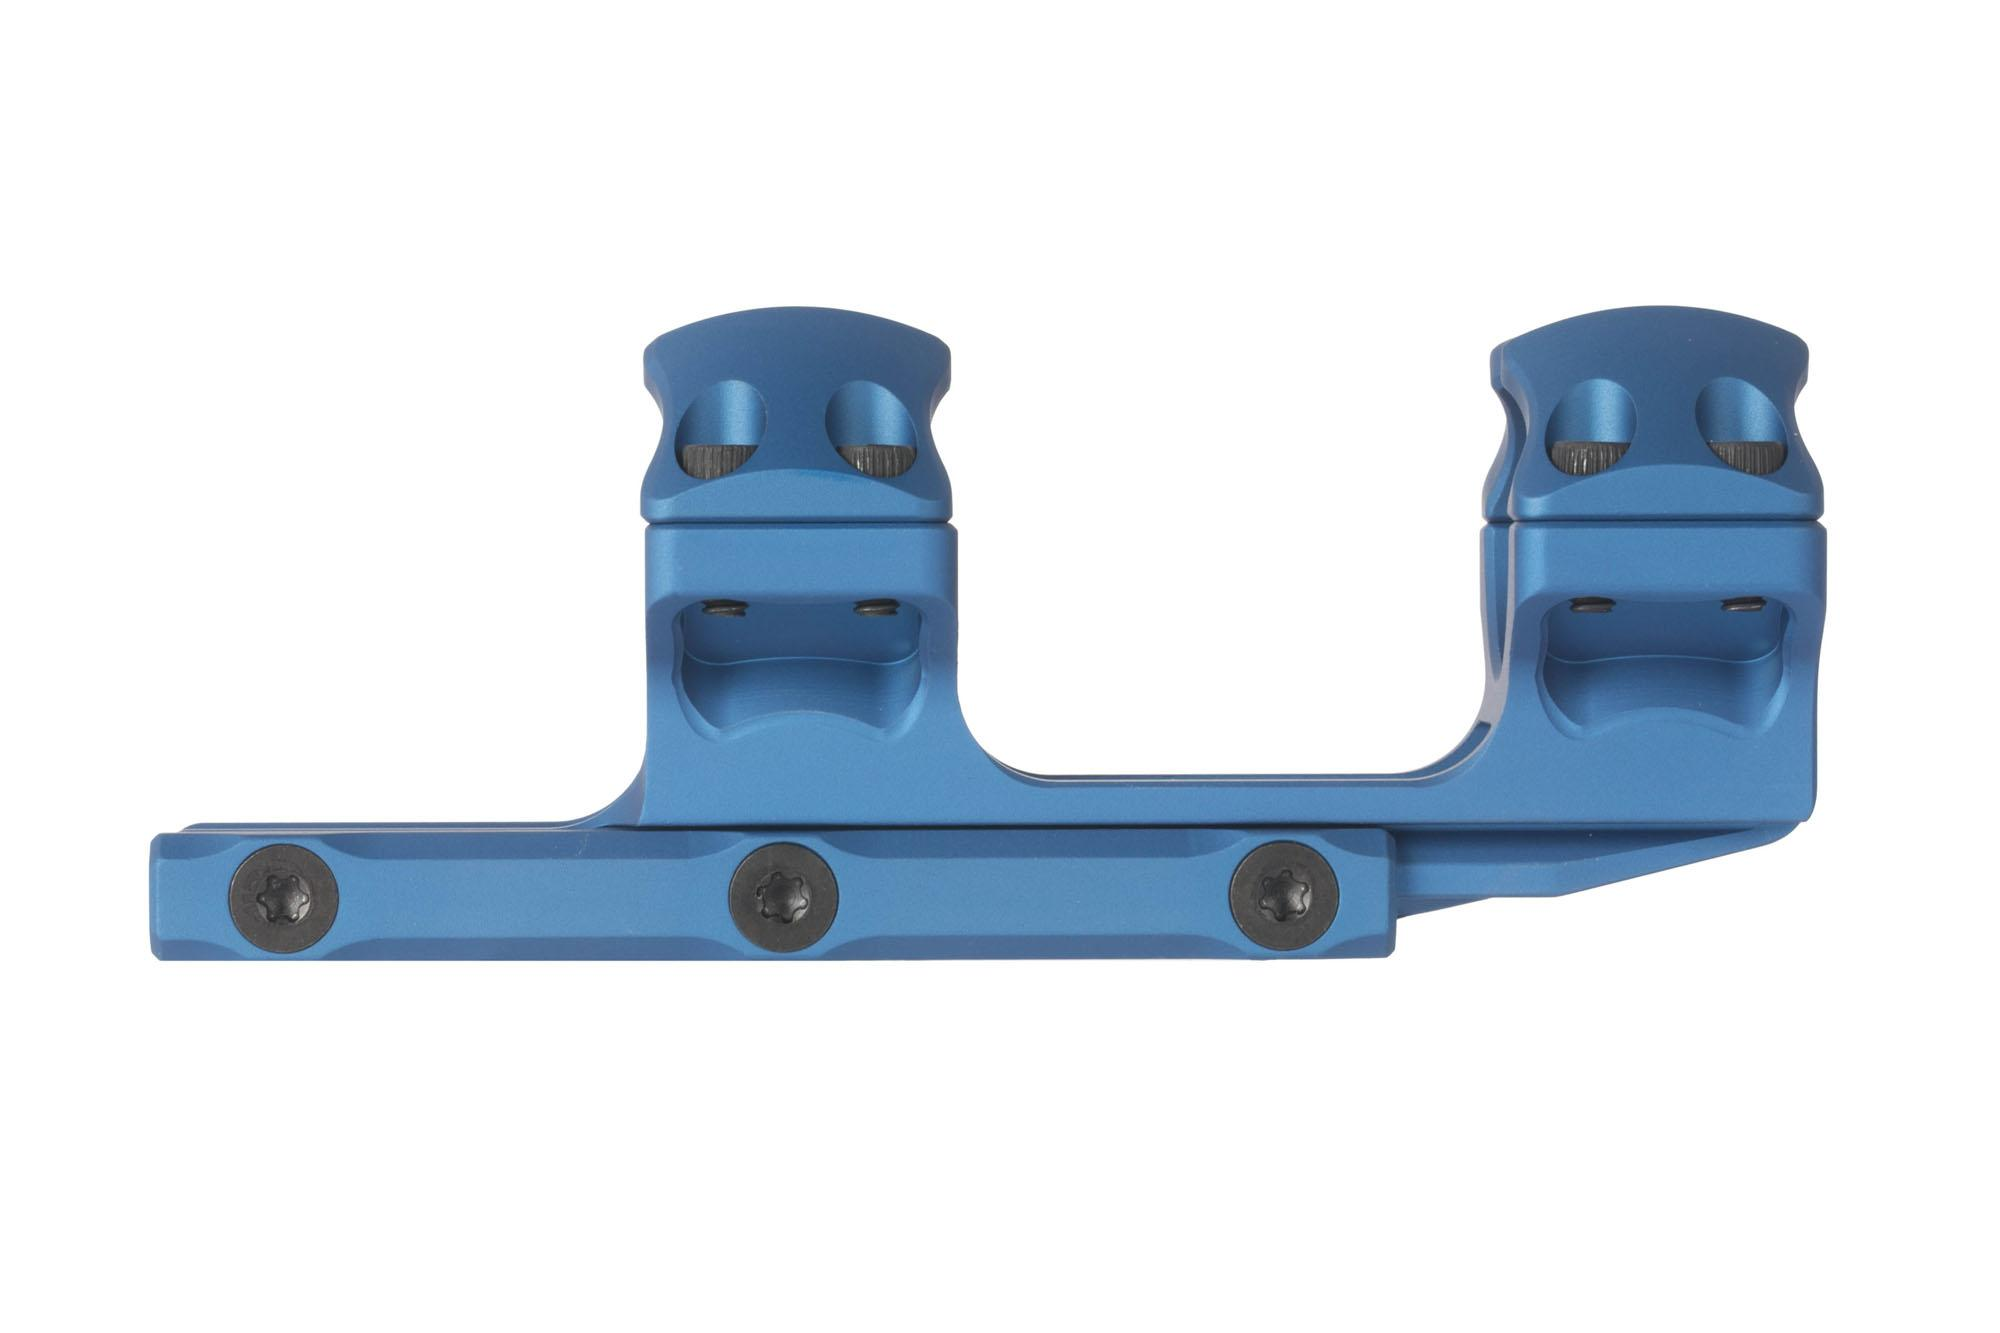 Leapers UTG ACCU-SYNC 1in medium height scope mount is machined from 6061-T6 aluminum with blue anodized finish